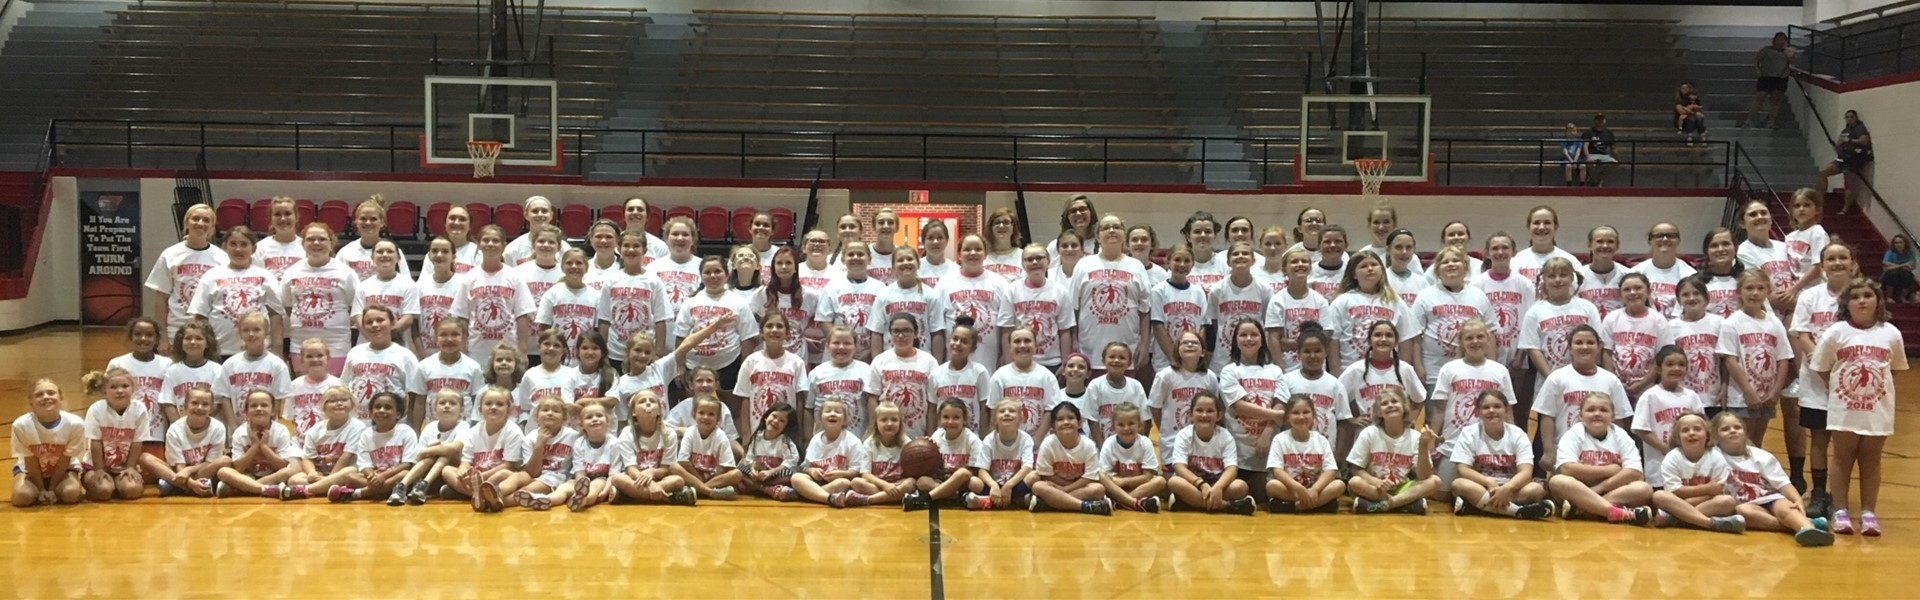 Lady Colonels Basketball Camp